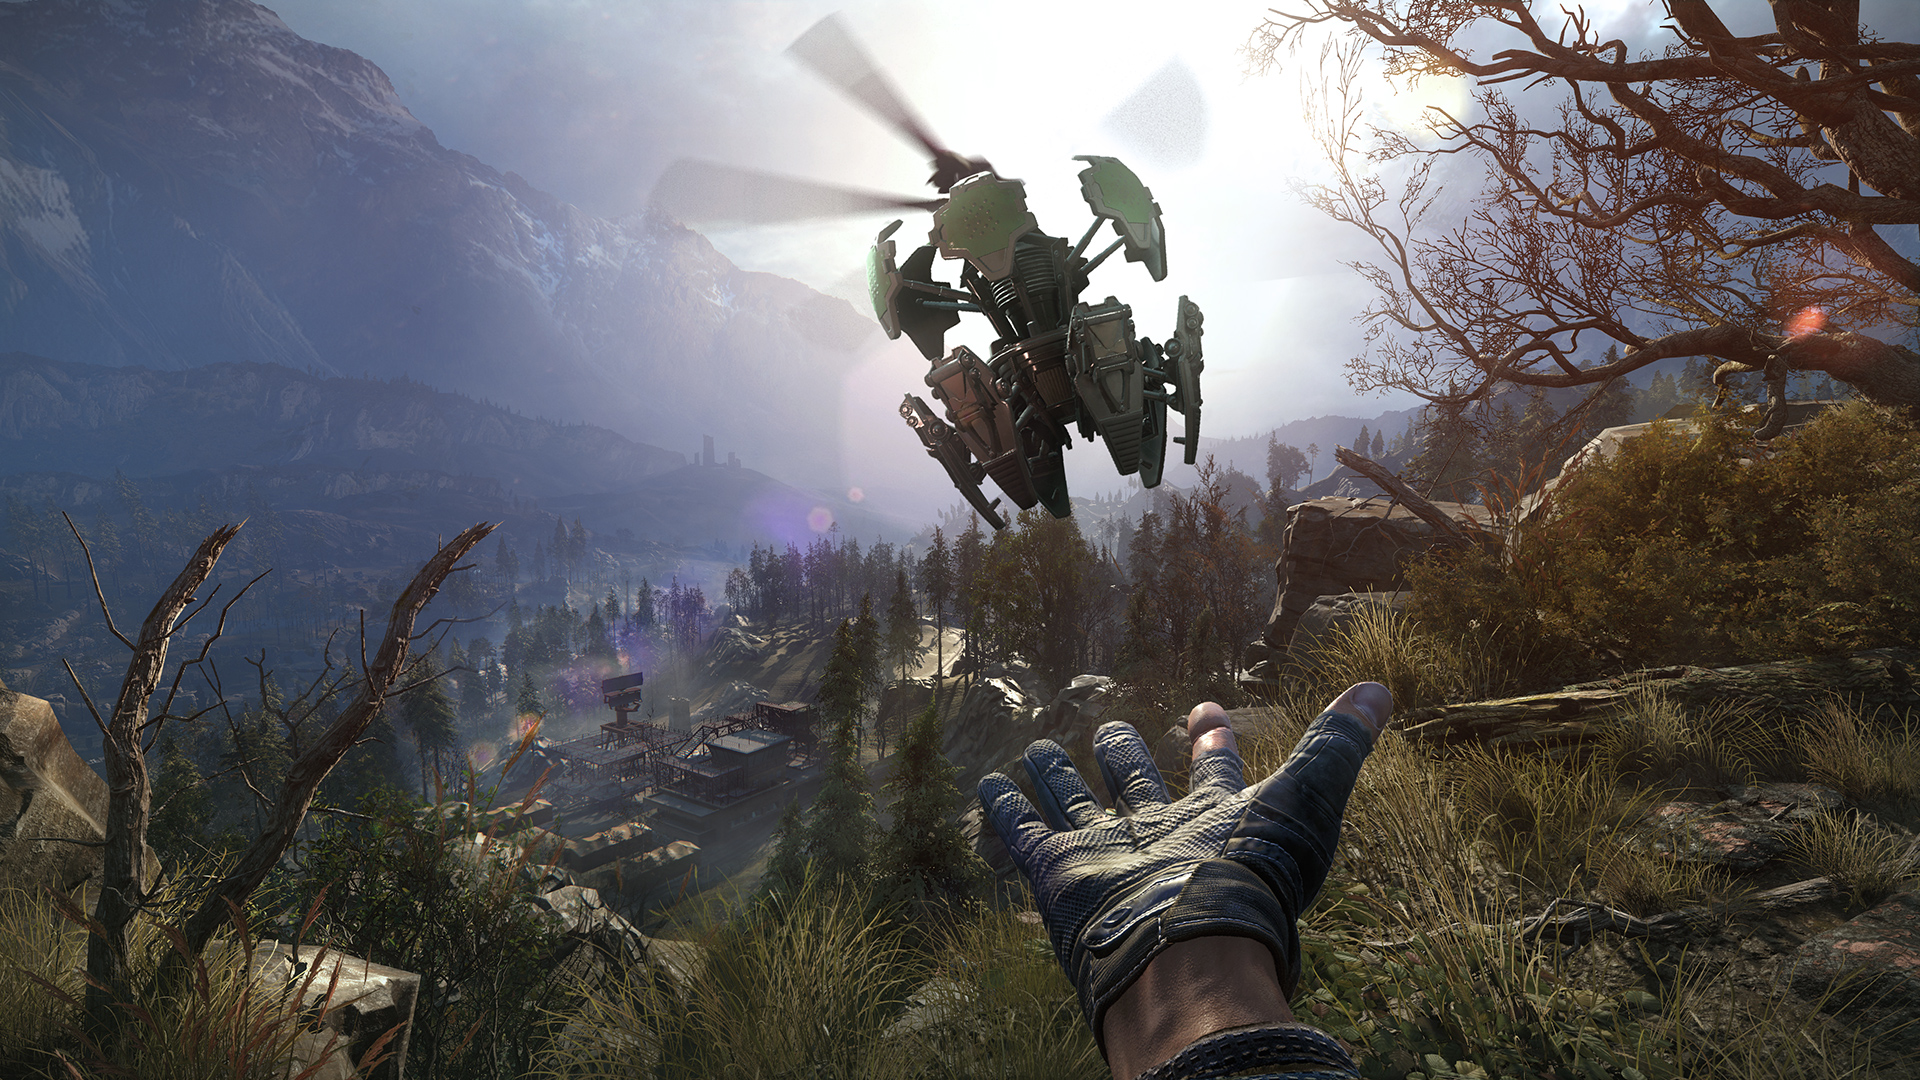 New Sniper Ghost Warrior 3 Trailer And Screenshots